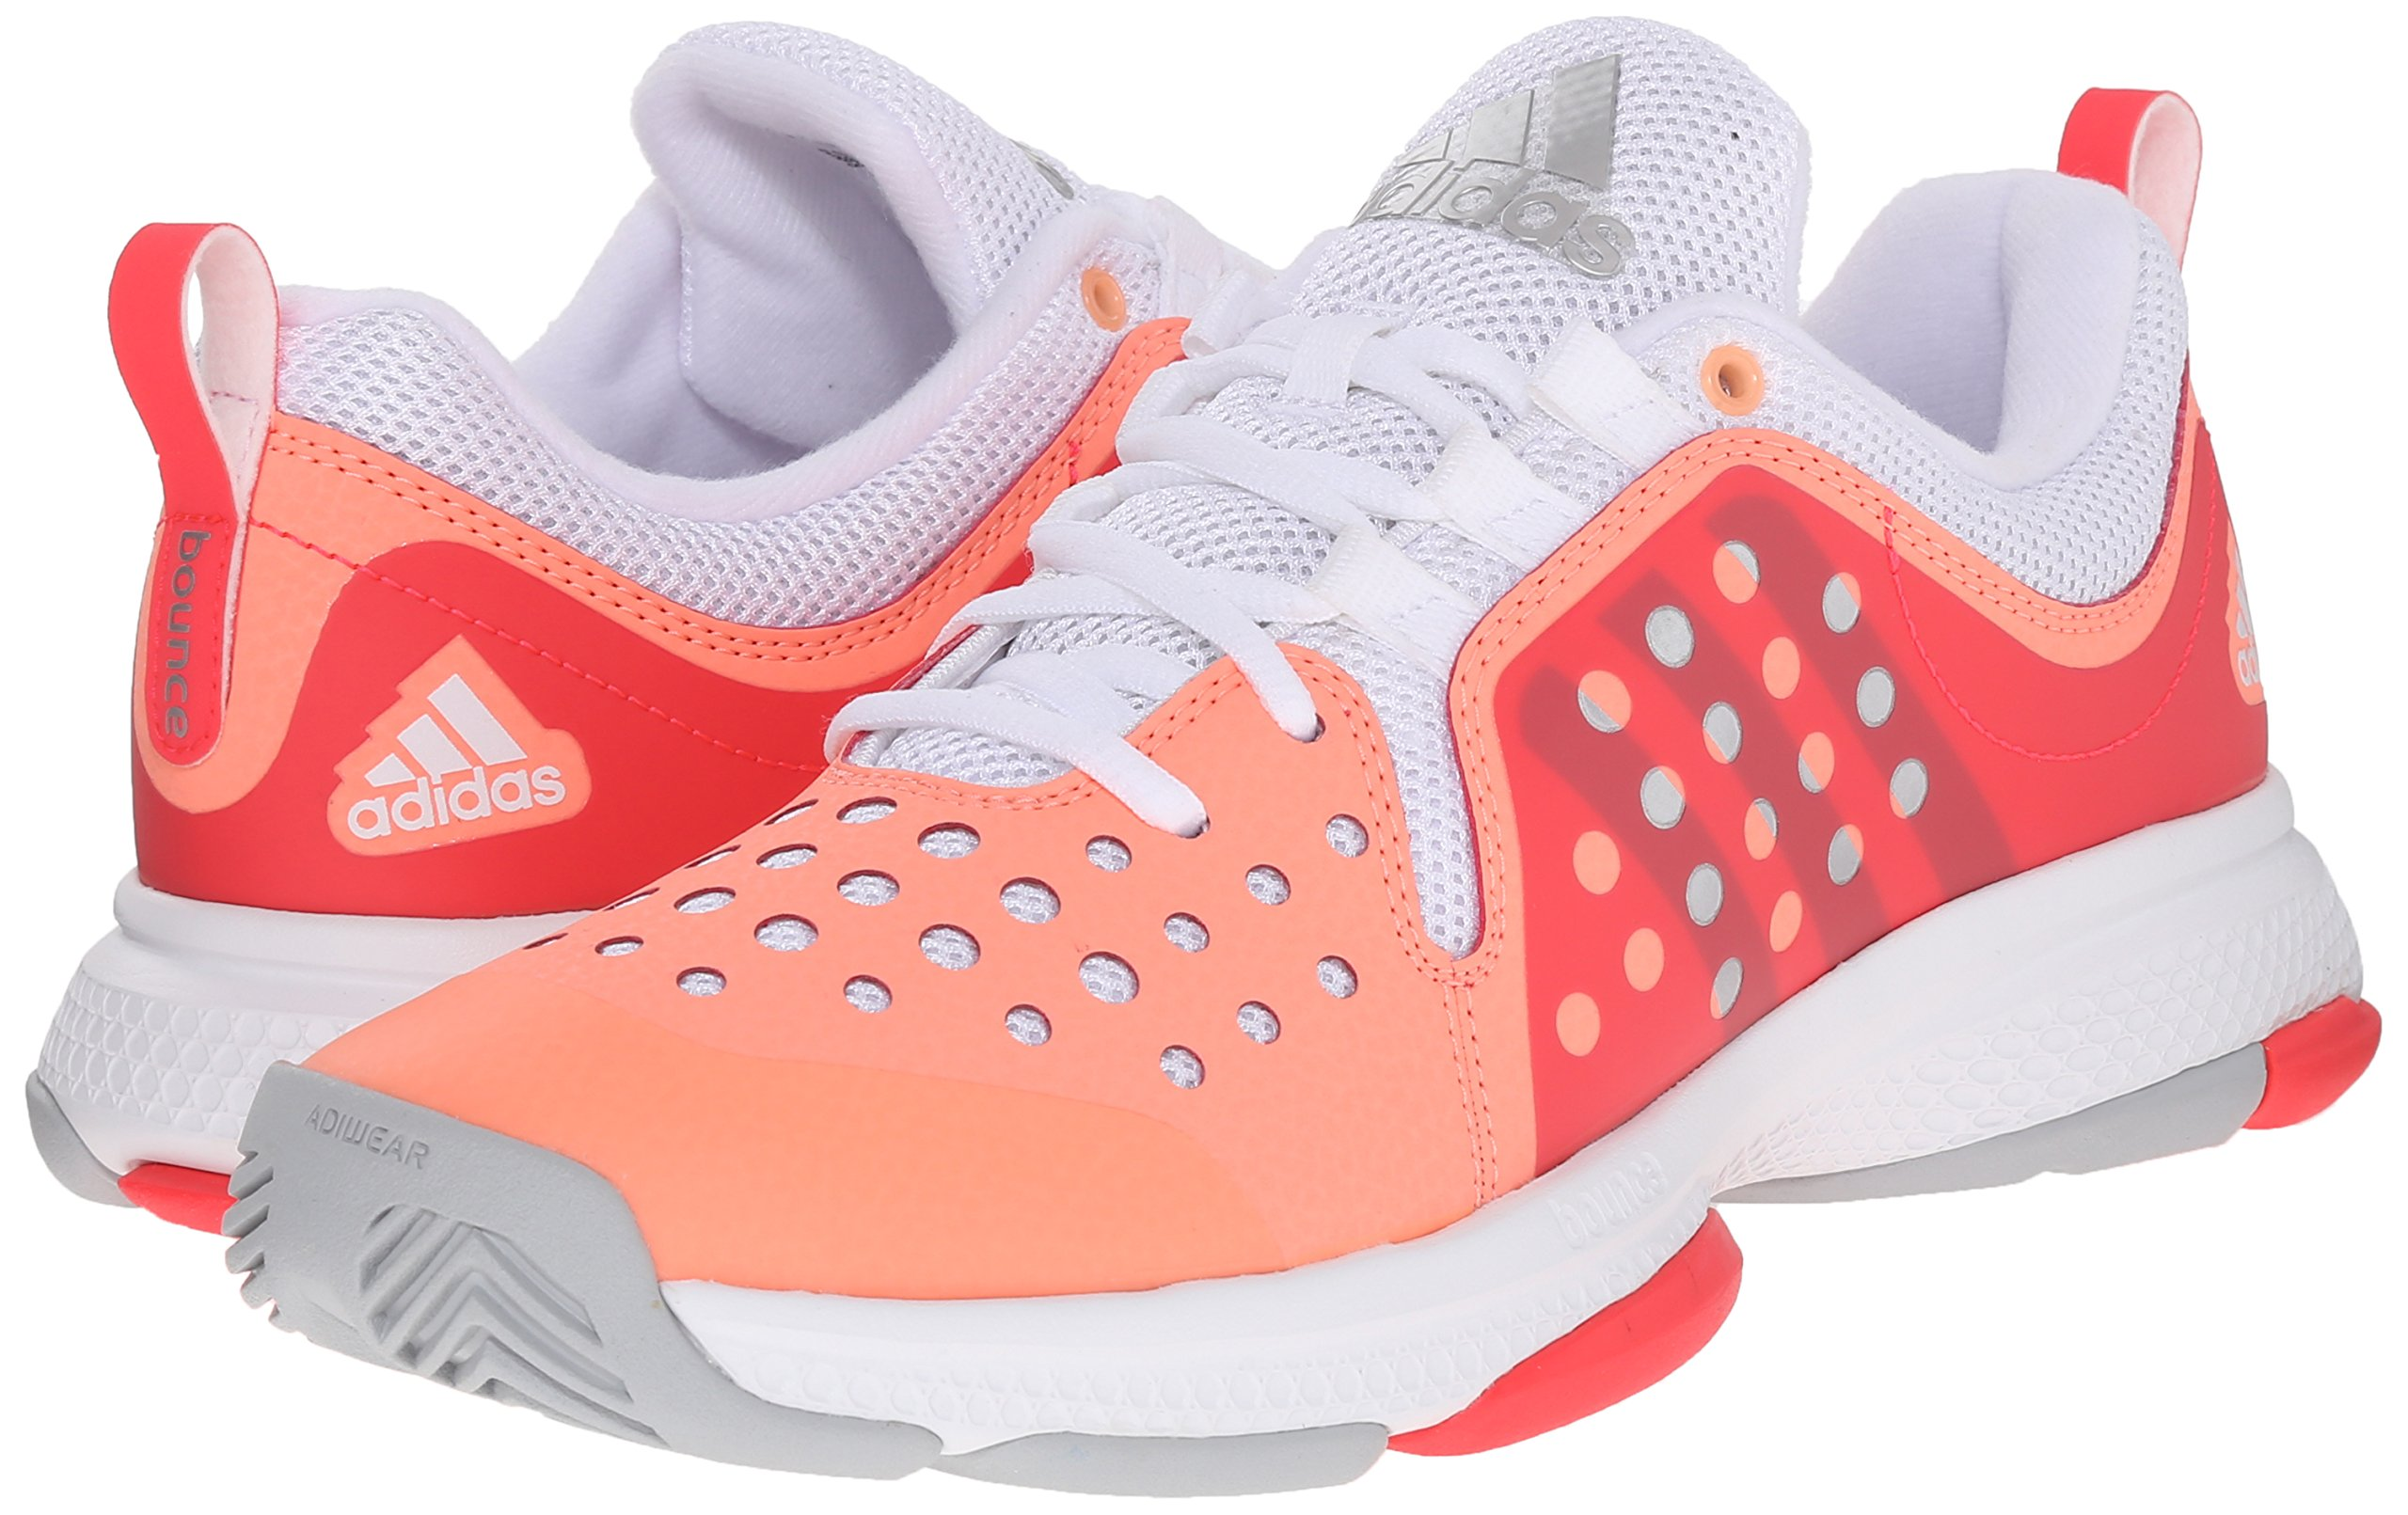 adidas Performance Women's Barricade Classic Bounce W Training Footwear,Sun Glow Yellow/Metallic Silver/Shock Red,9.5 M US by adidas (Image #6)